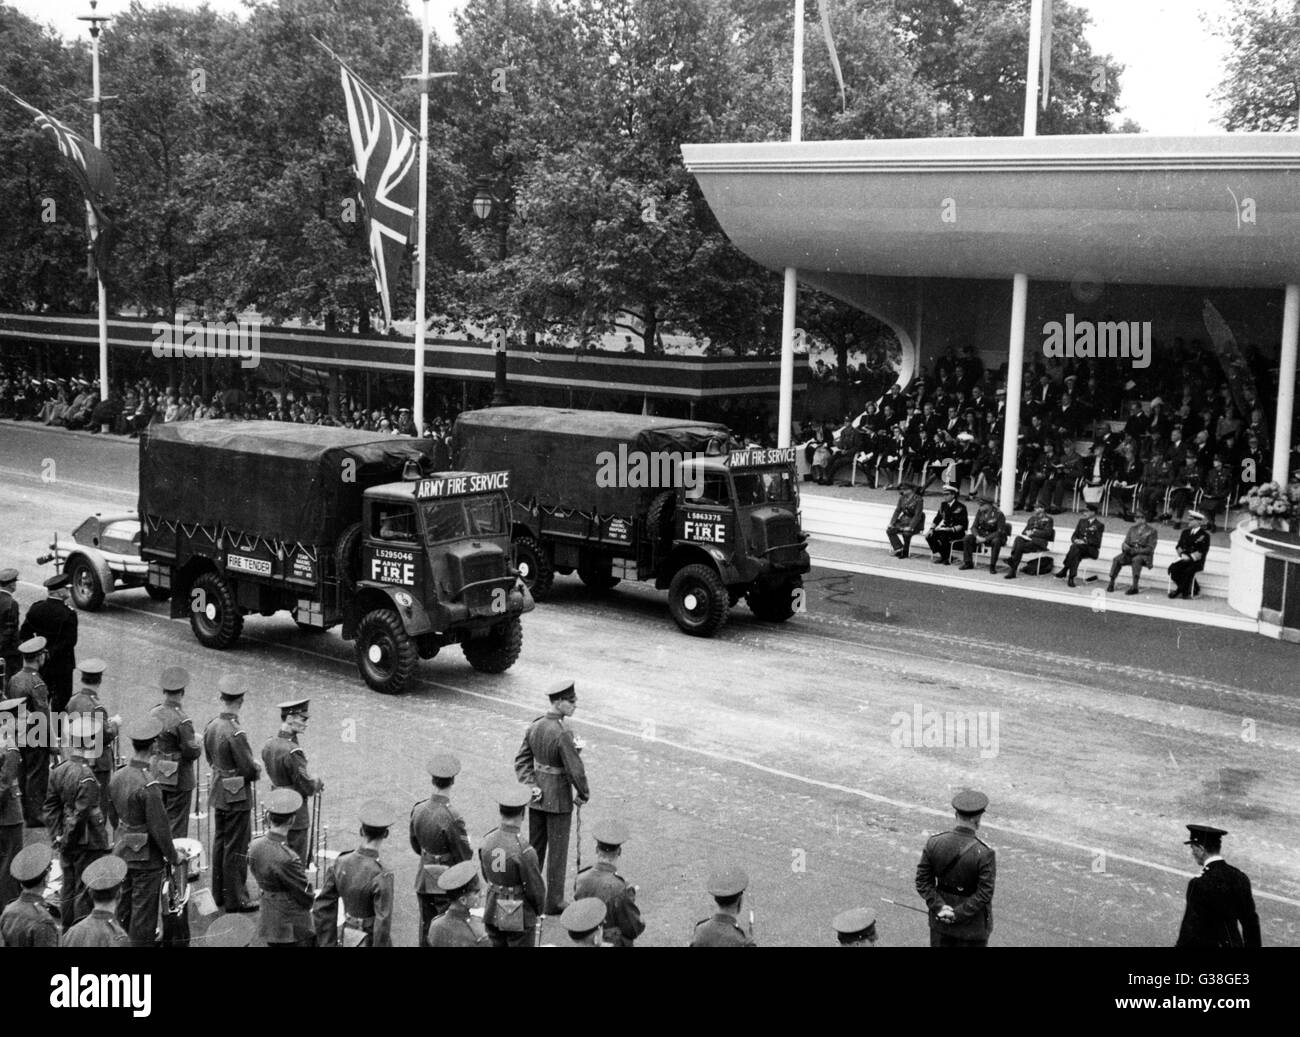 The Victory Parade : vehicles  of the Army Fire Service pass the Saluting Base.       Date: 8 June 1946 - Stock Image